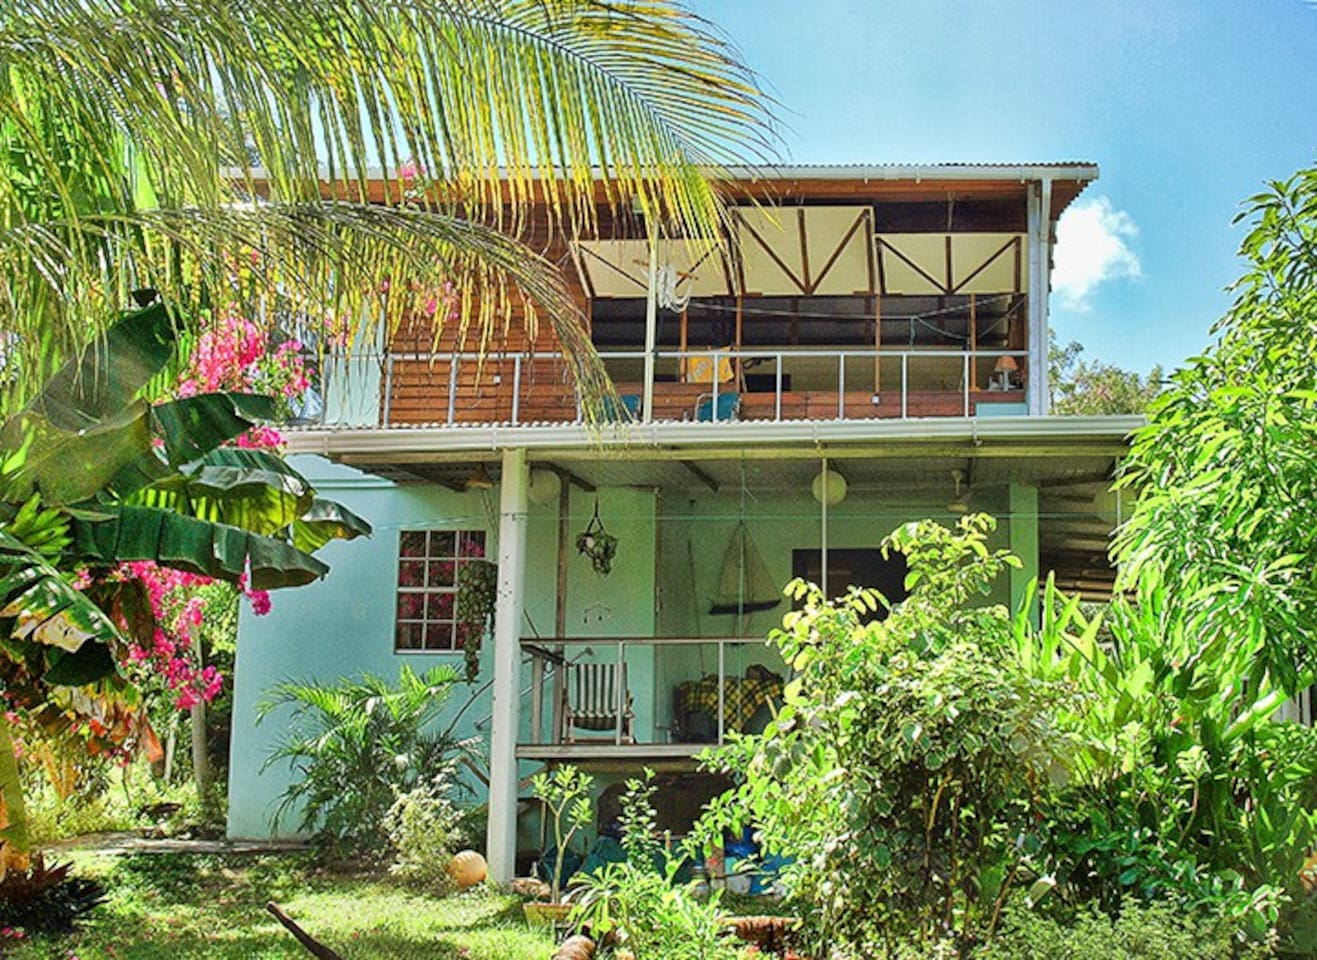 Garden house close to the beach - Apartments for Rent in carriacou ...